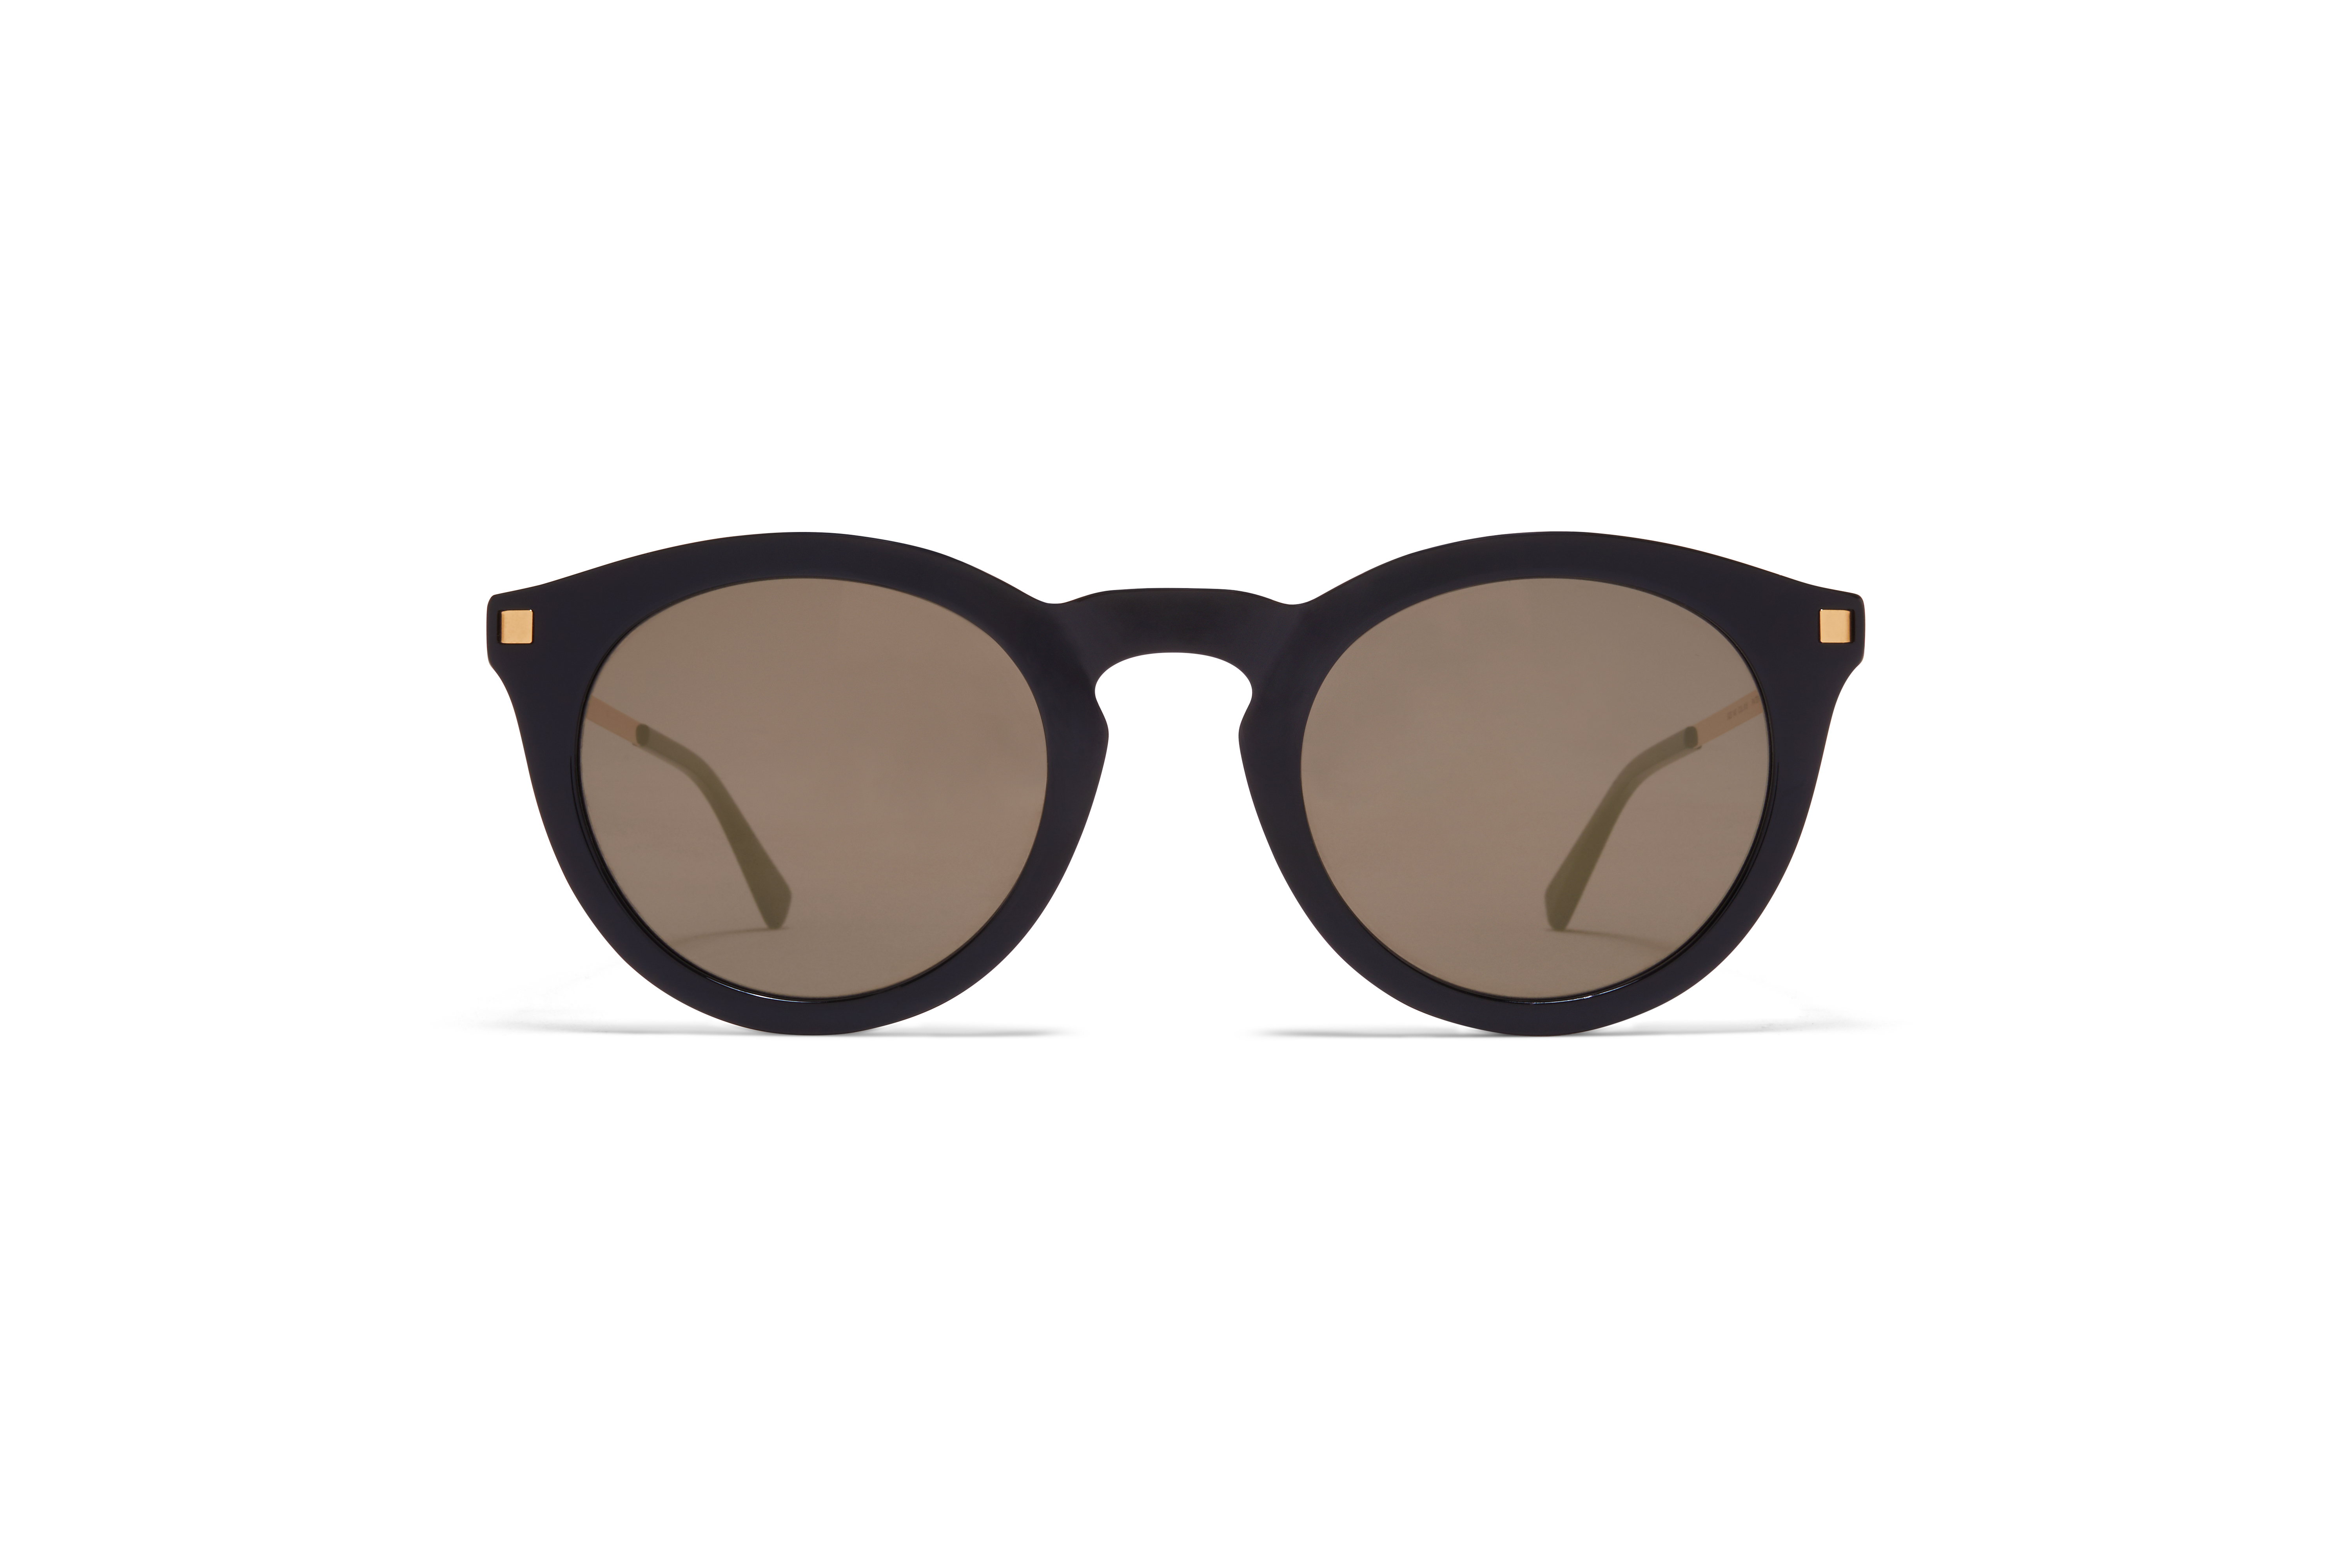 MYKITA Lite Acetate Sun Meriwa C6 Black Glossy Gold Brilliant Grey Solid